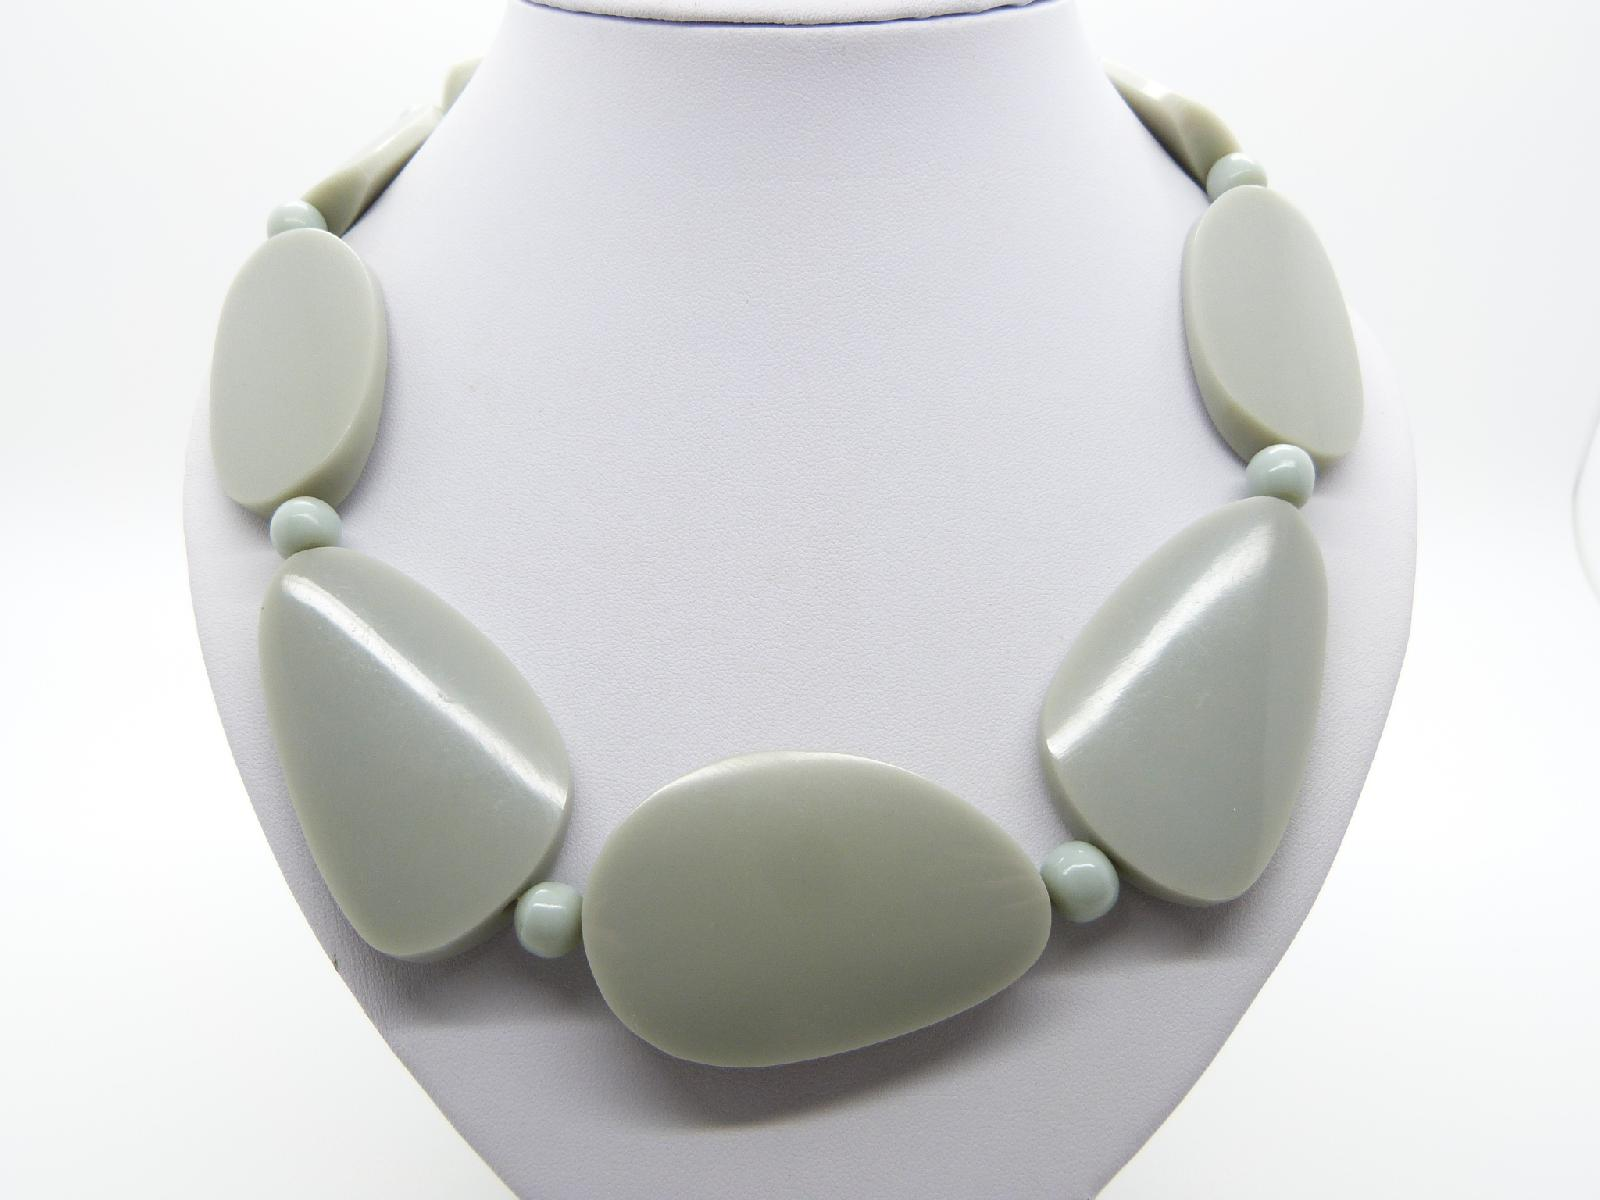 £13.00 - Stylish and Chic Chunky Grey Bead Acrylic Plastic Statement Necklace